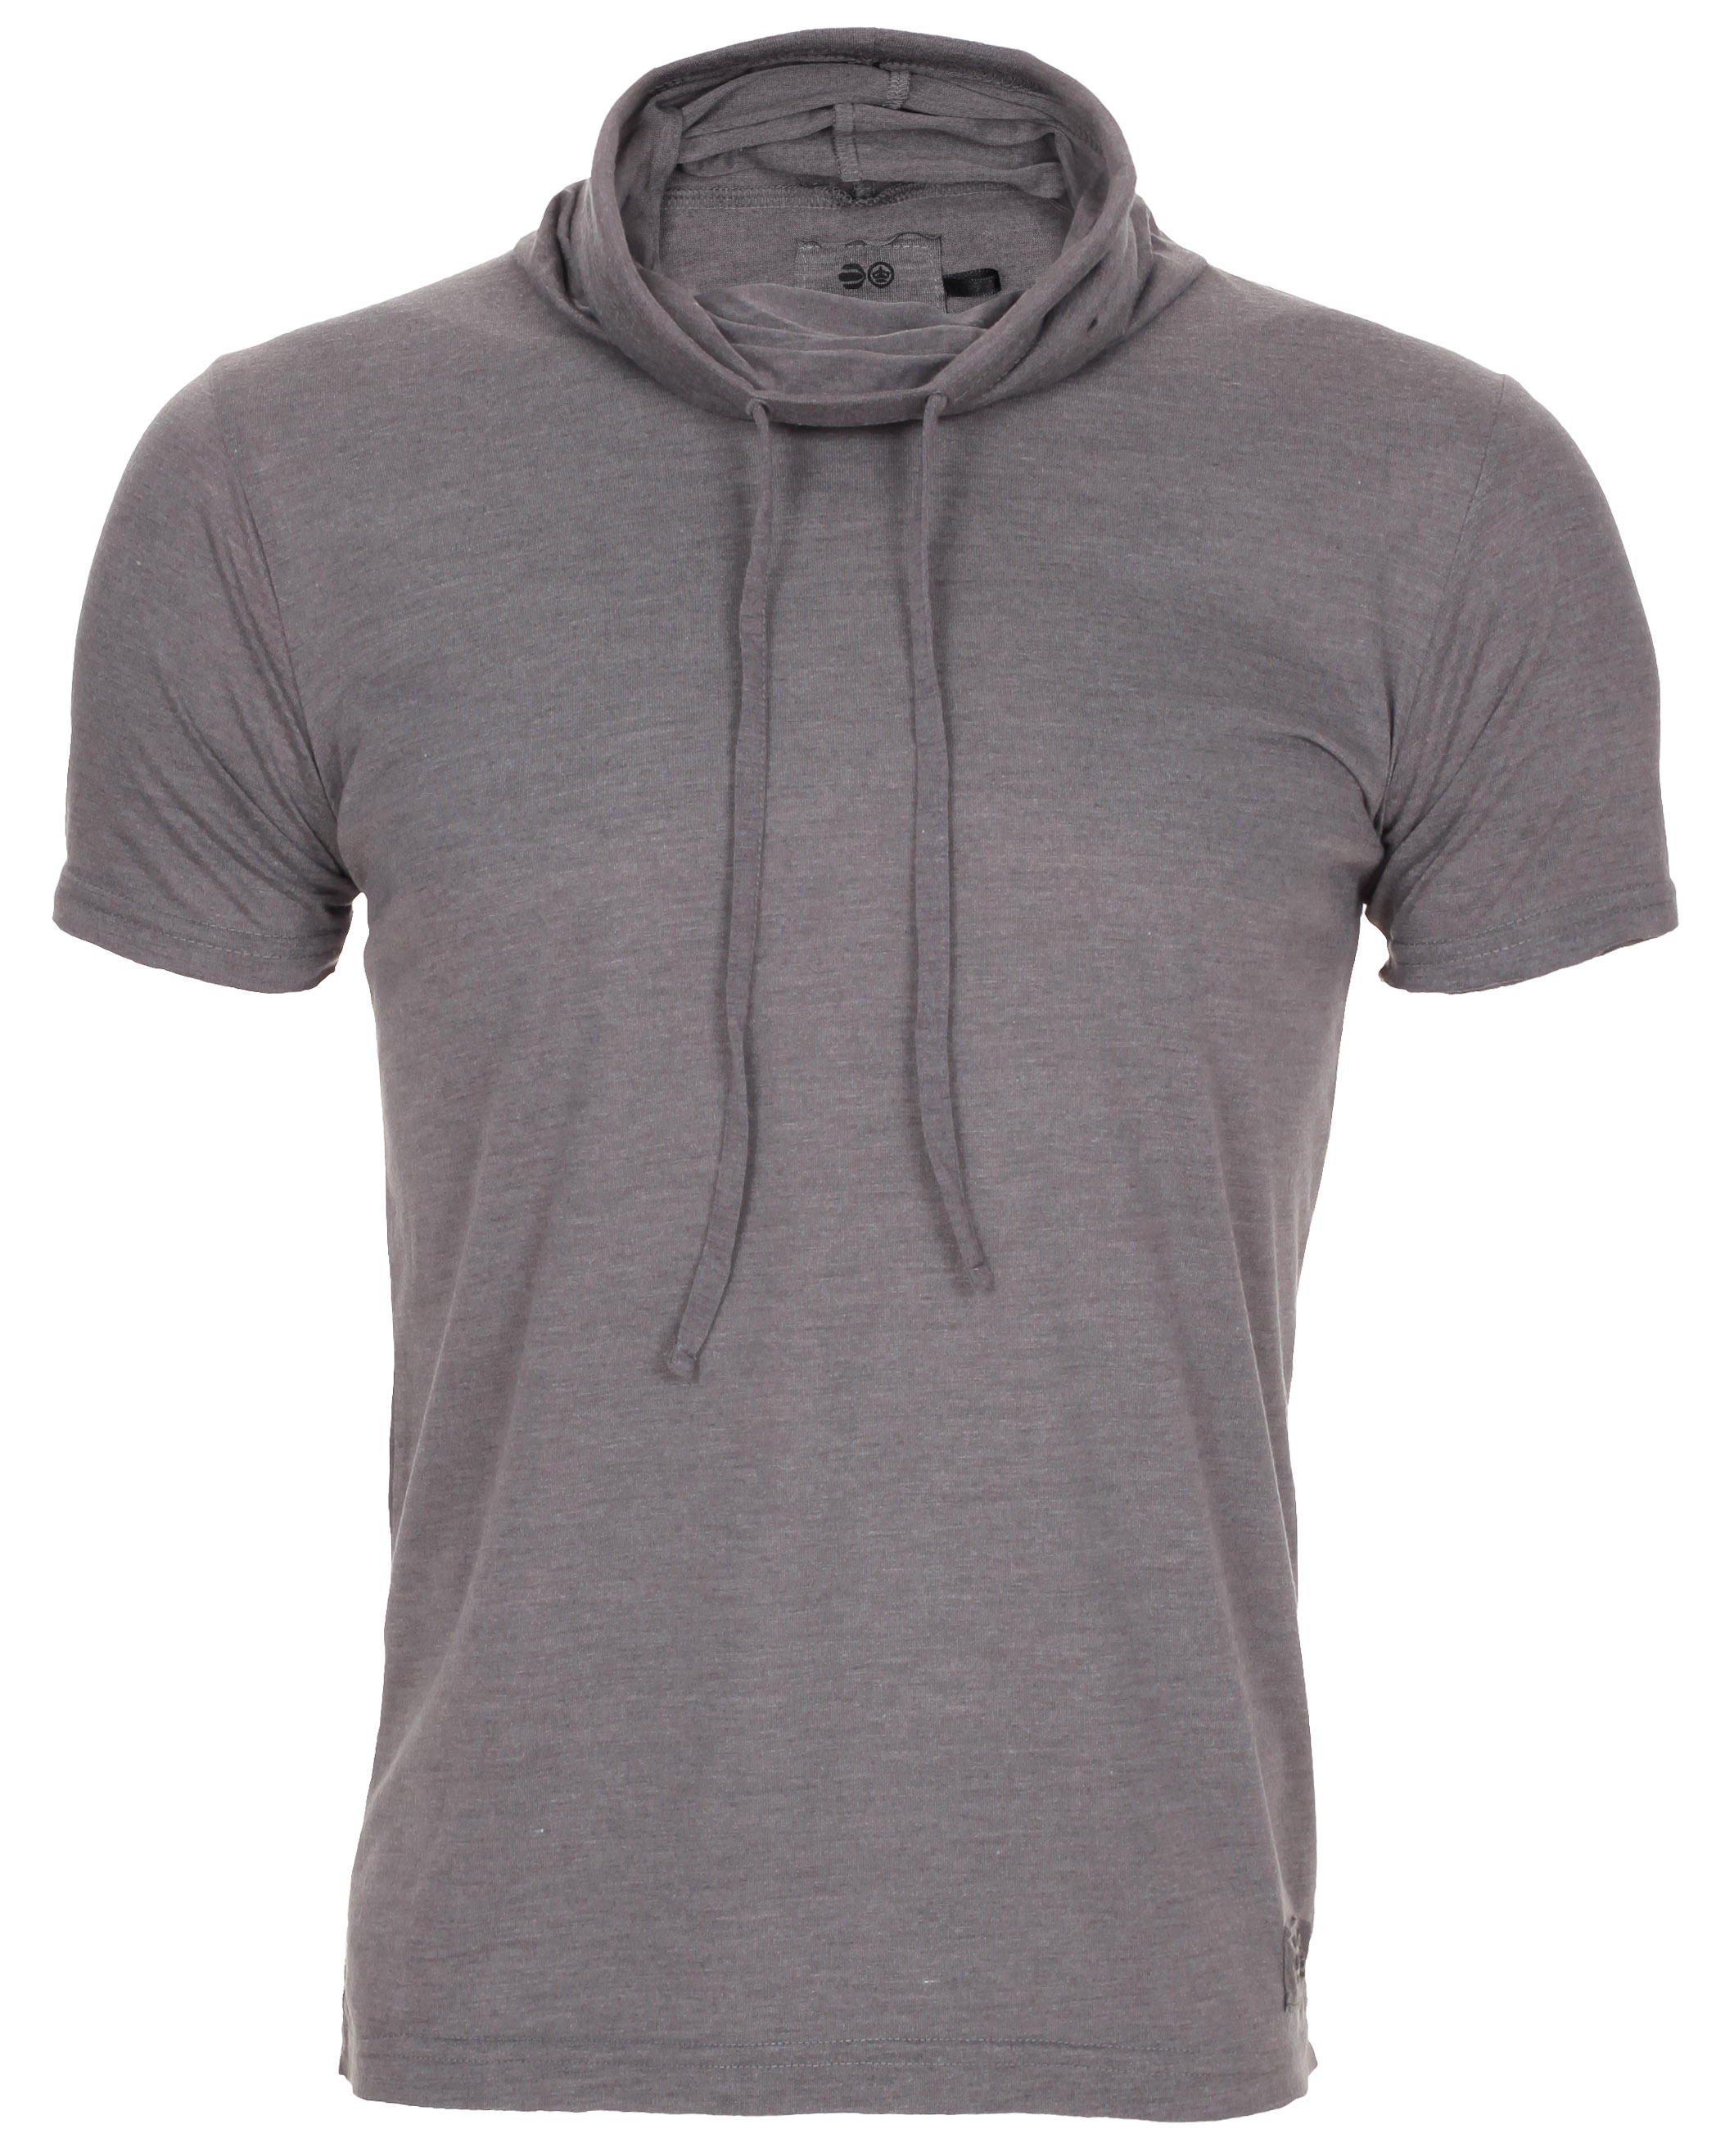 Blue-Inc-Mens-Crosshatch-Gibbel-Plain-Cowl-Neck-T-Shirt-Dark-Grey